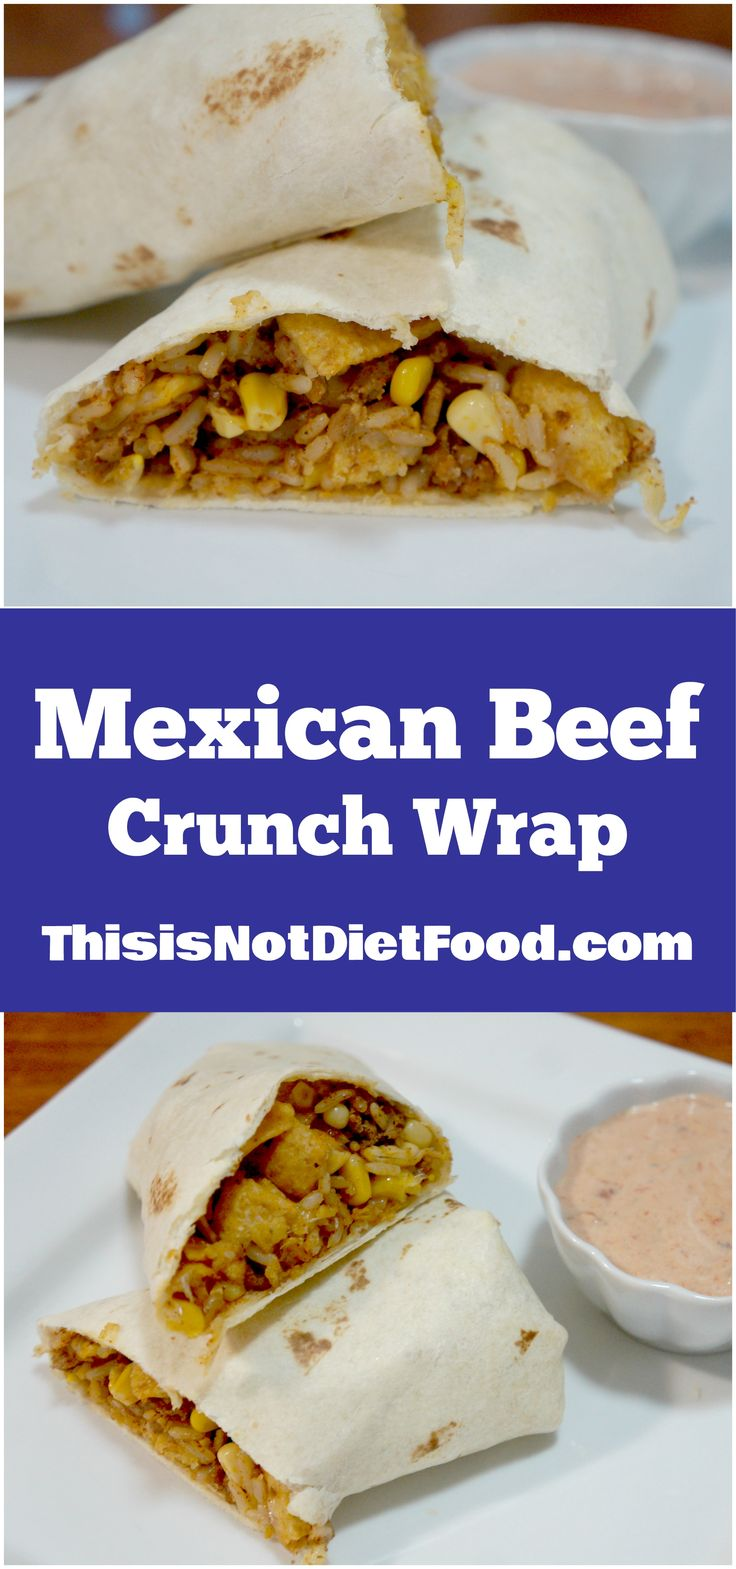 Mexican Beef Crunch Wrap. These tasty wraps are inspired by burritos and filled with Fritos corn chips to give them a crunch.